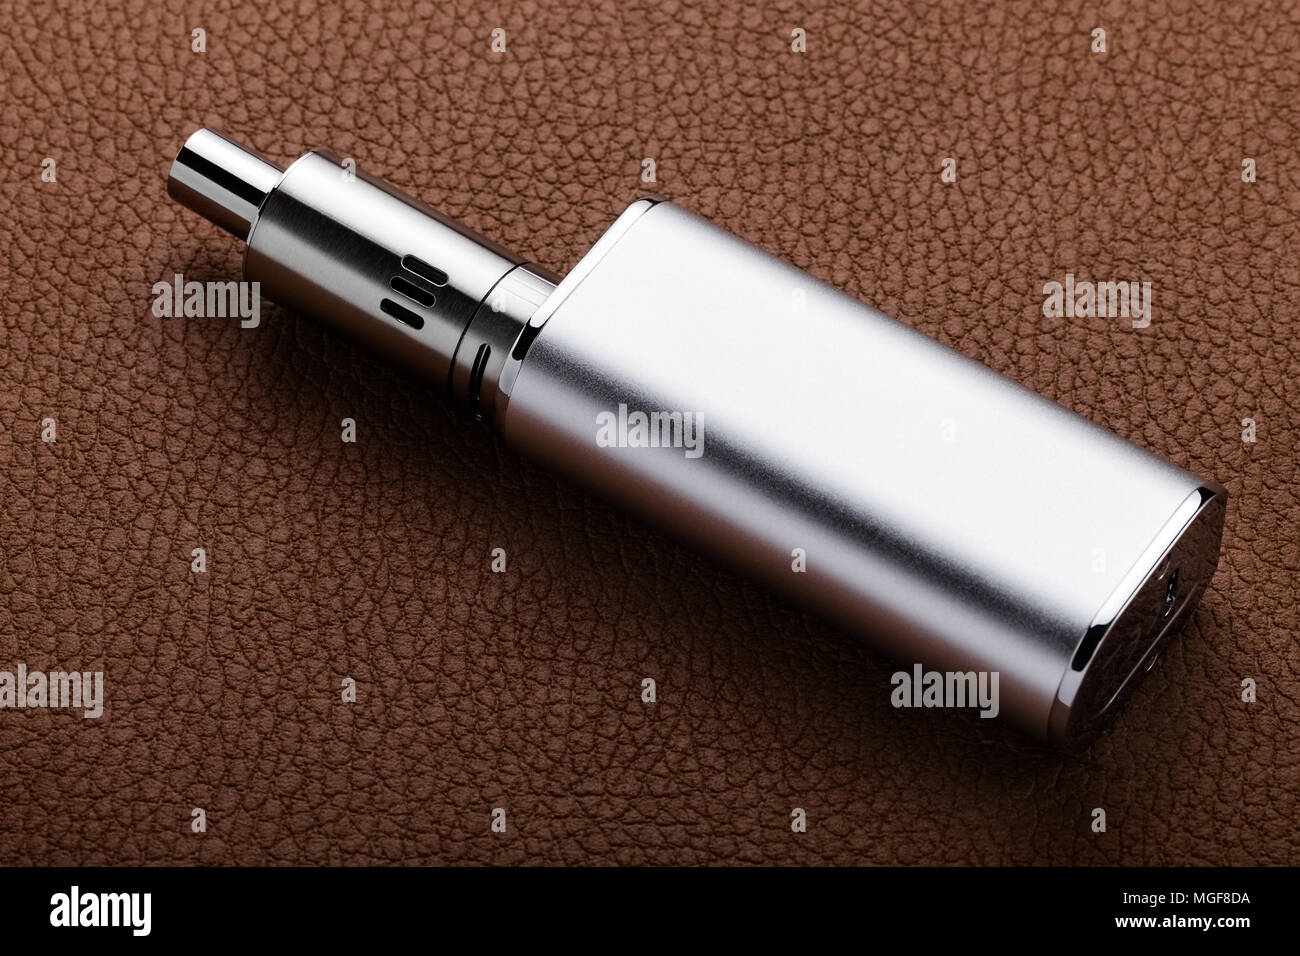 Electronic cigarette on leather background - Stock Image